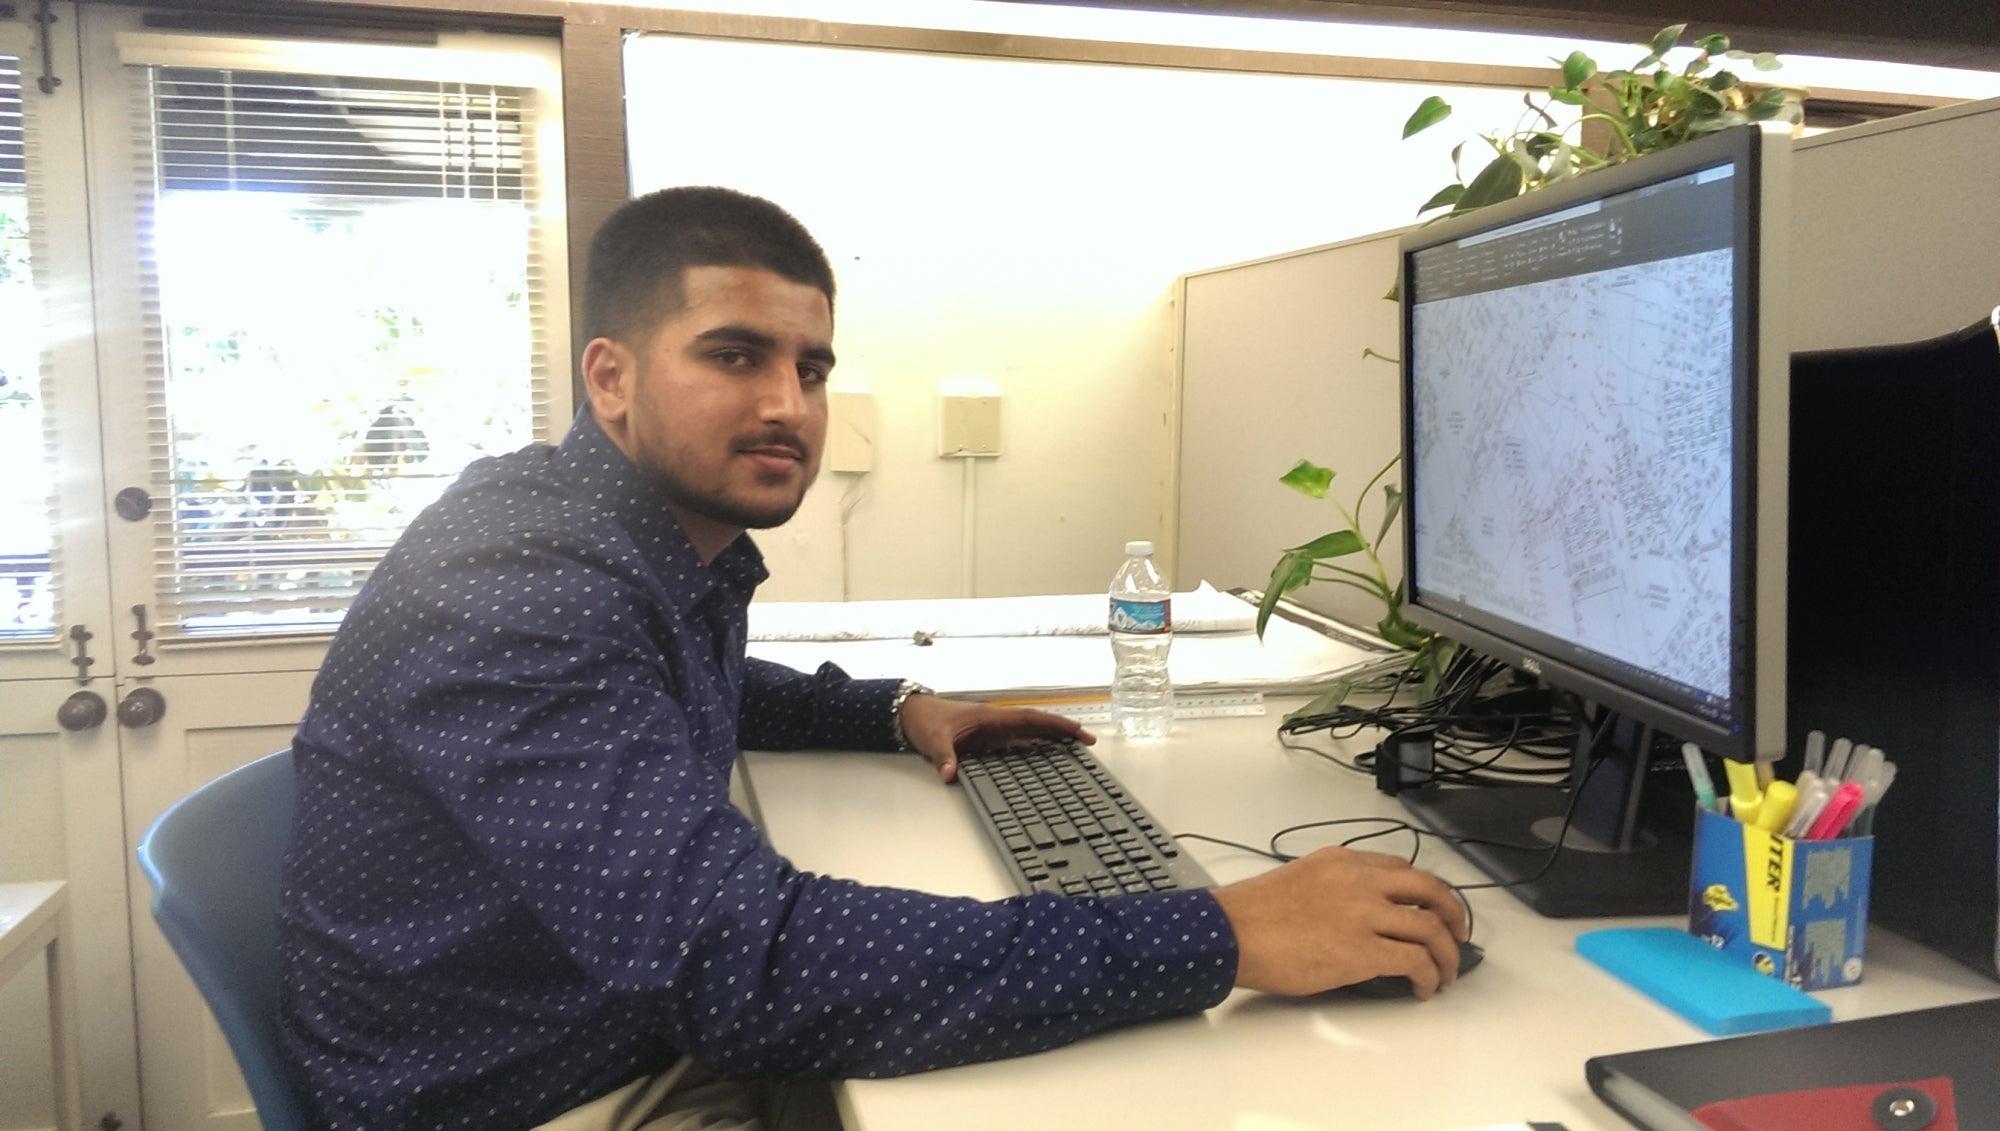 Maneek Dhillon, Intern for the City of San Pablo, Contra Costa County